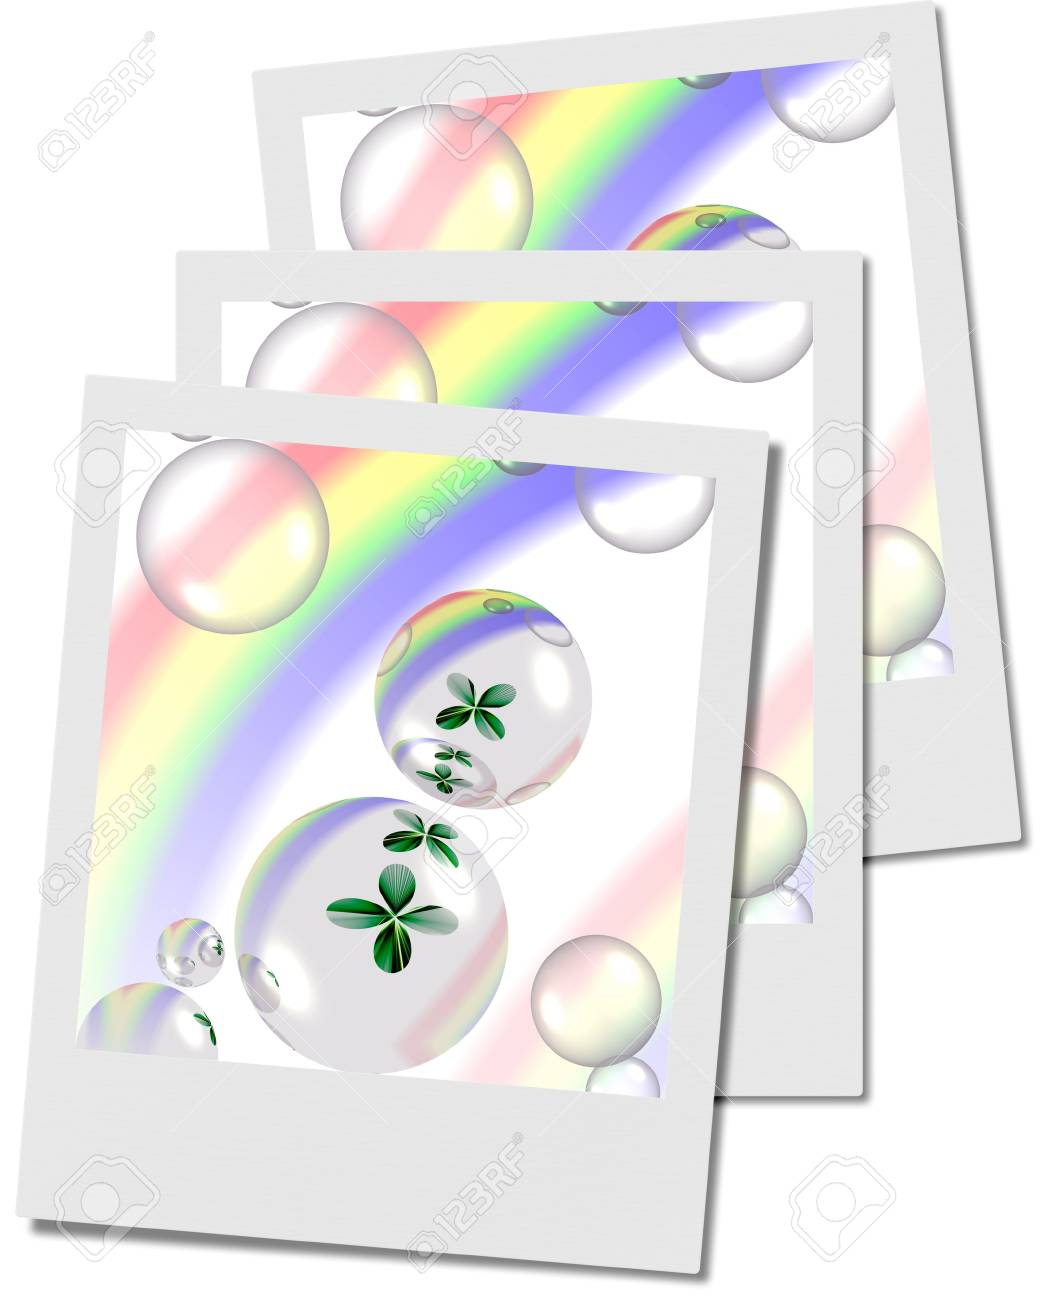 shamrock and bubbles with rainbow polaroids, illustration, computer-generated, Stock Illustration - 3181441